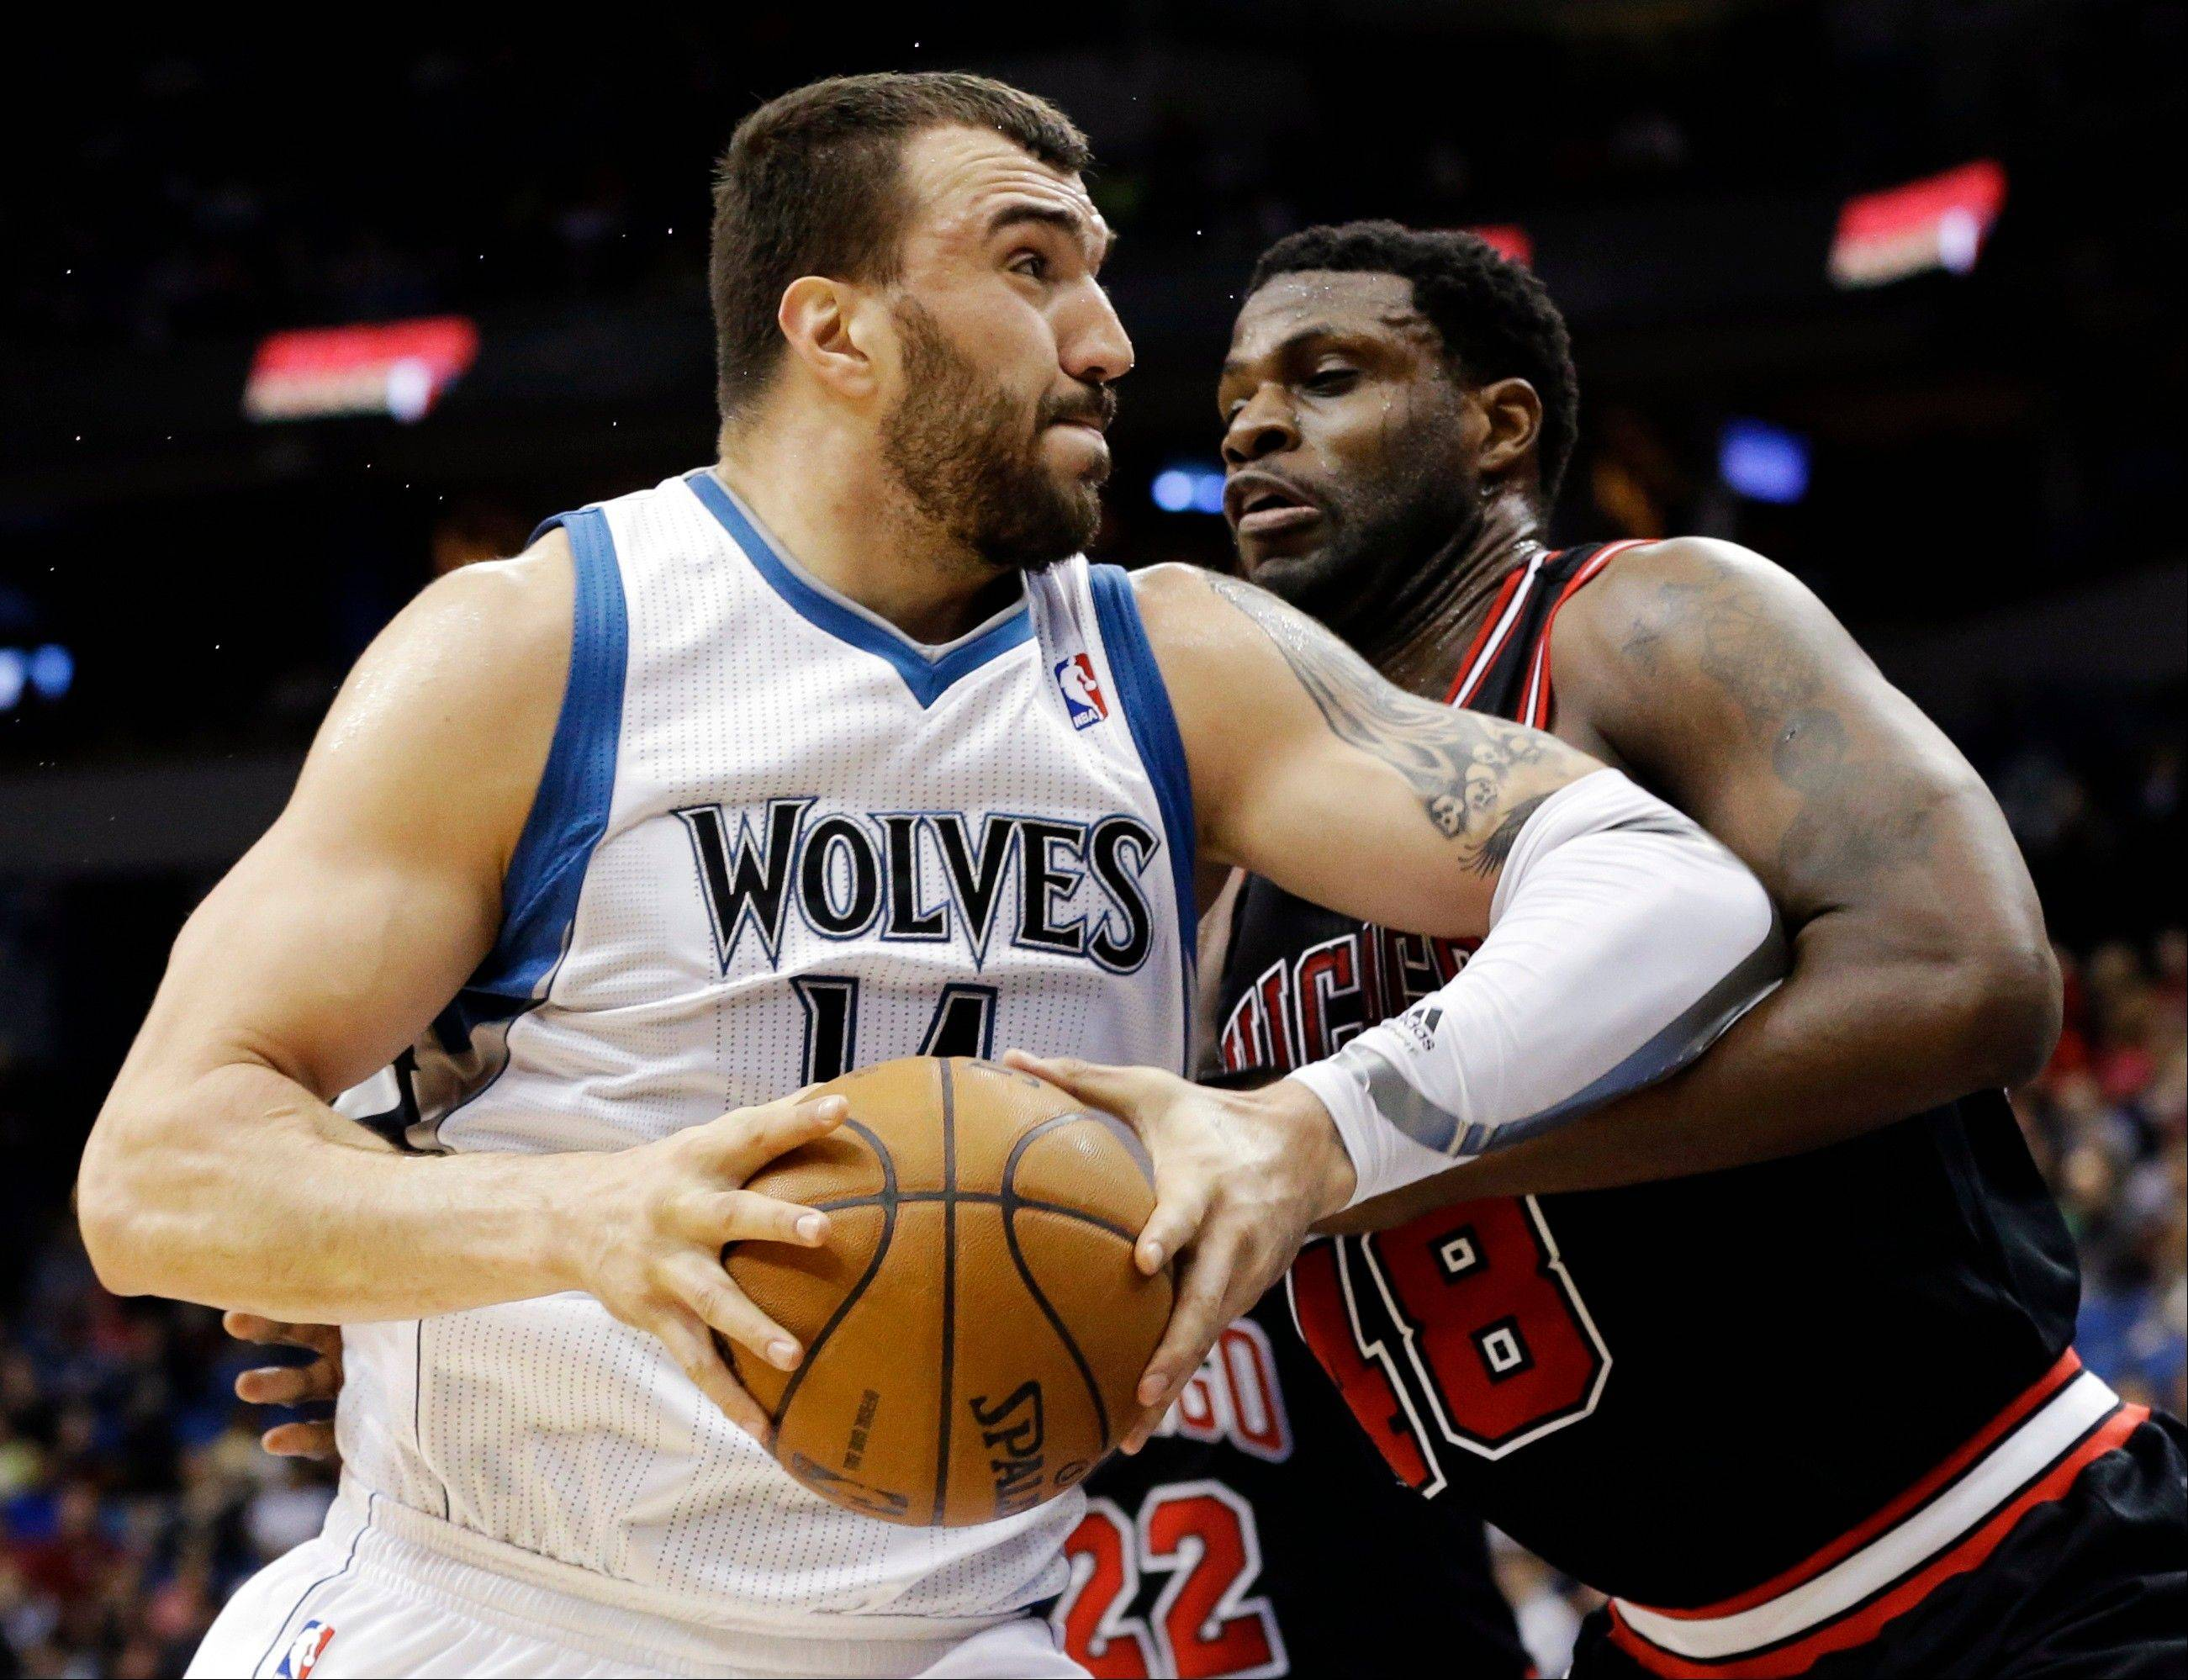 Minnesota Timberwolves� Nikola Pekovic, left, of Montenegro, drives against the Bulls� Nazr Mohammed in the first quarter of an NBA basketball game, Sunday, March 24, 2013, in Minneapolis.